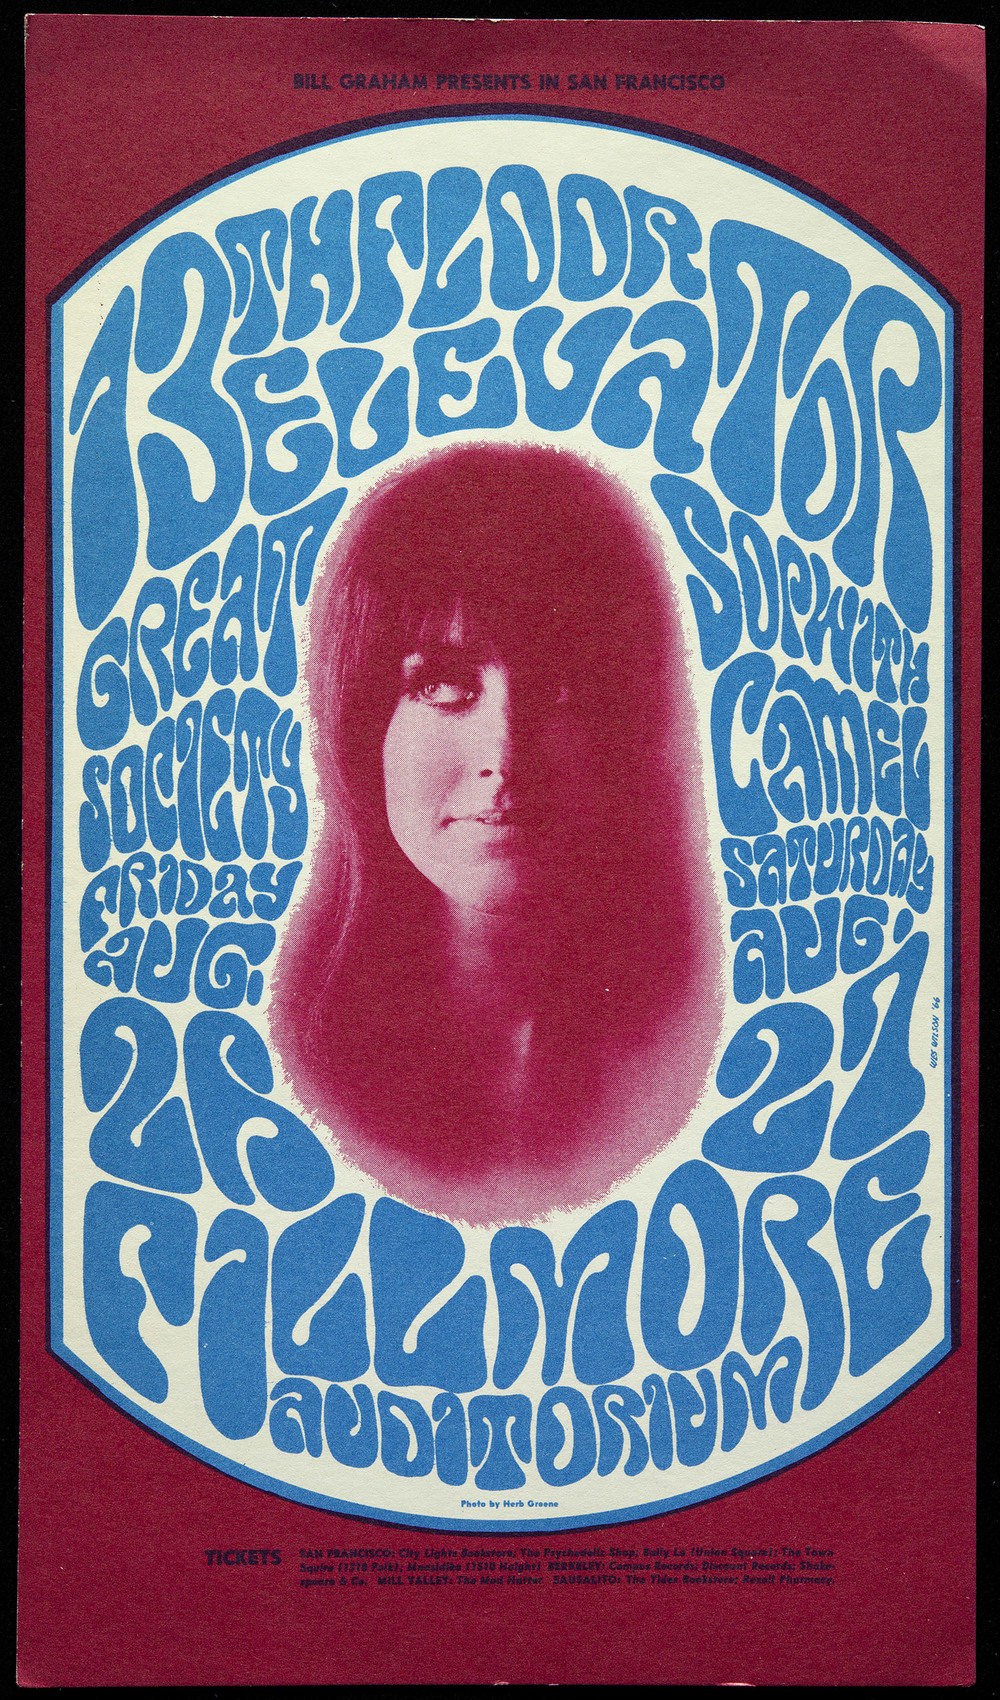 Wes Wilson, Fillmore Auditorium handbill, Bill Graham, San Francisco, August 26-27, 1966, 12.5 x 21.6 cm